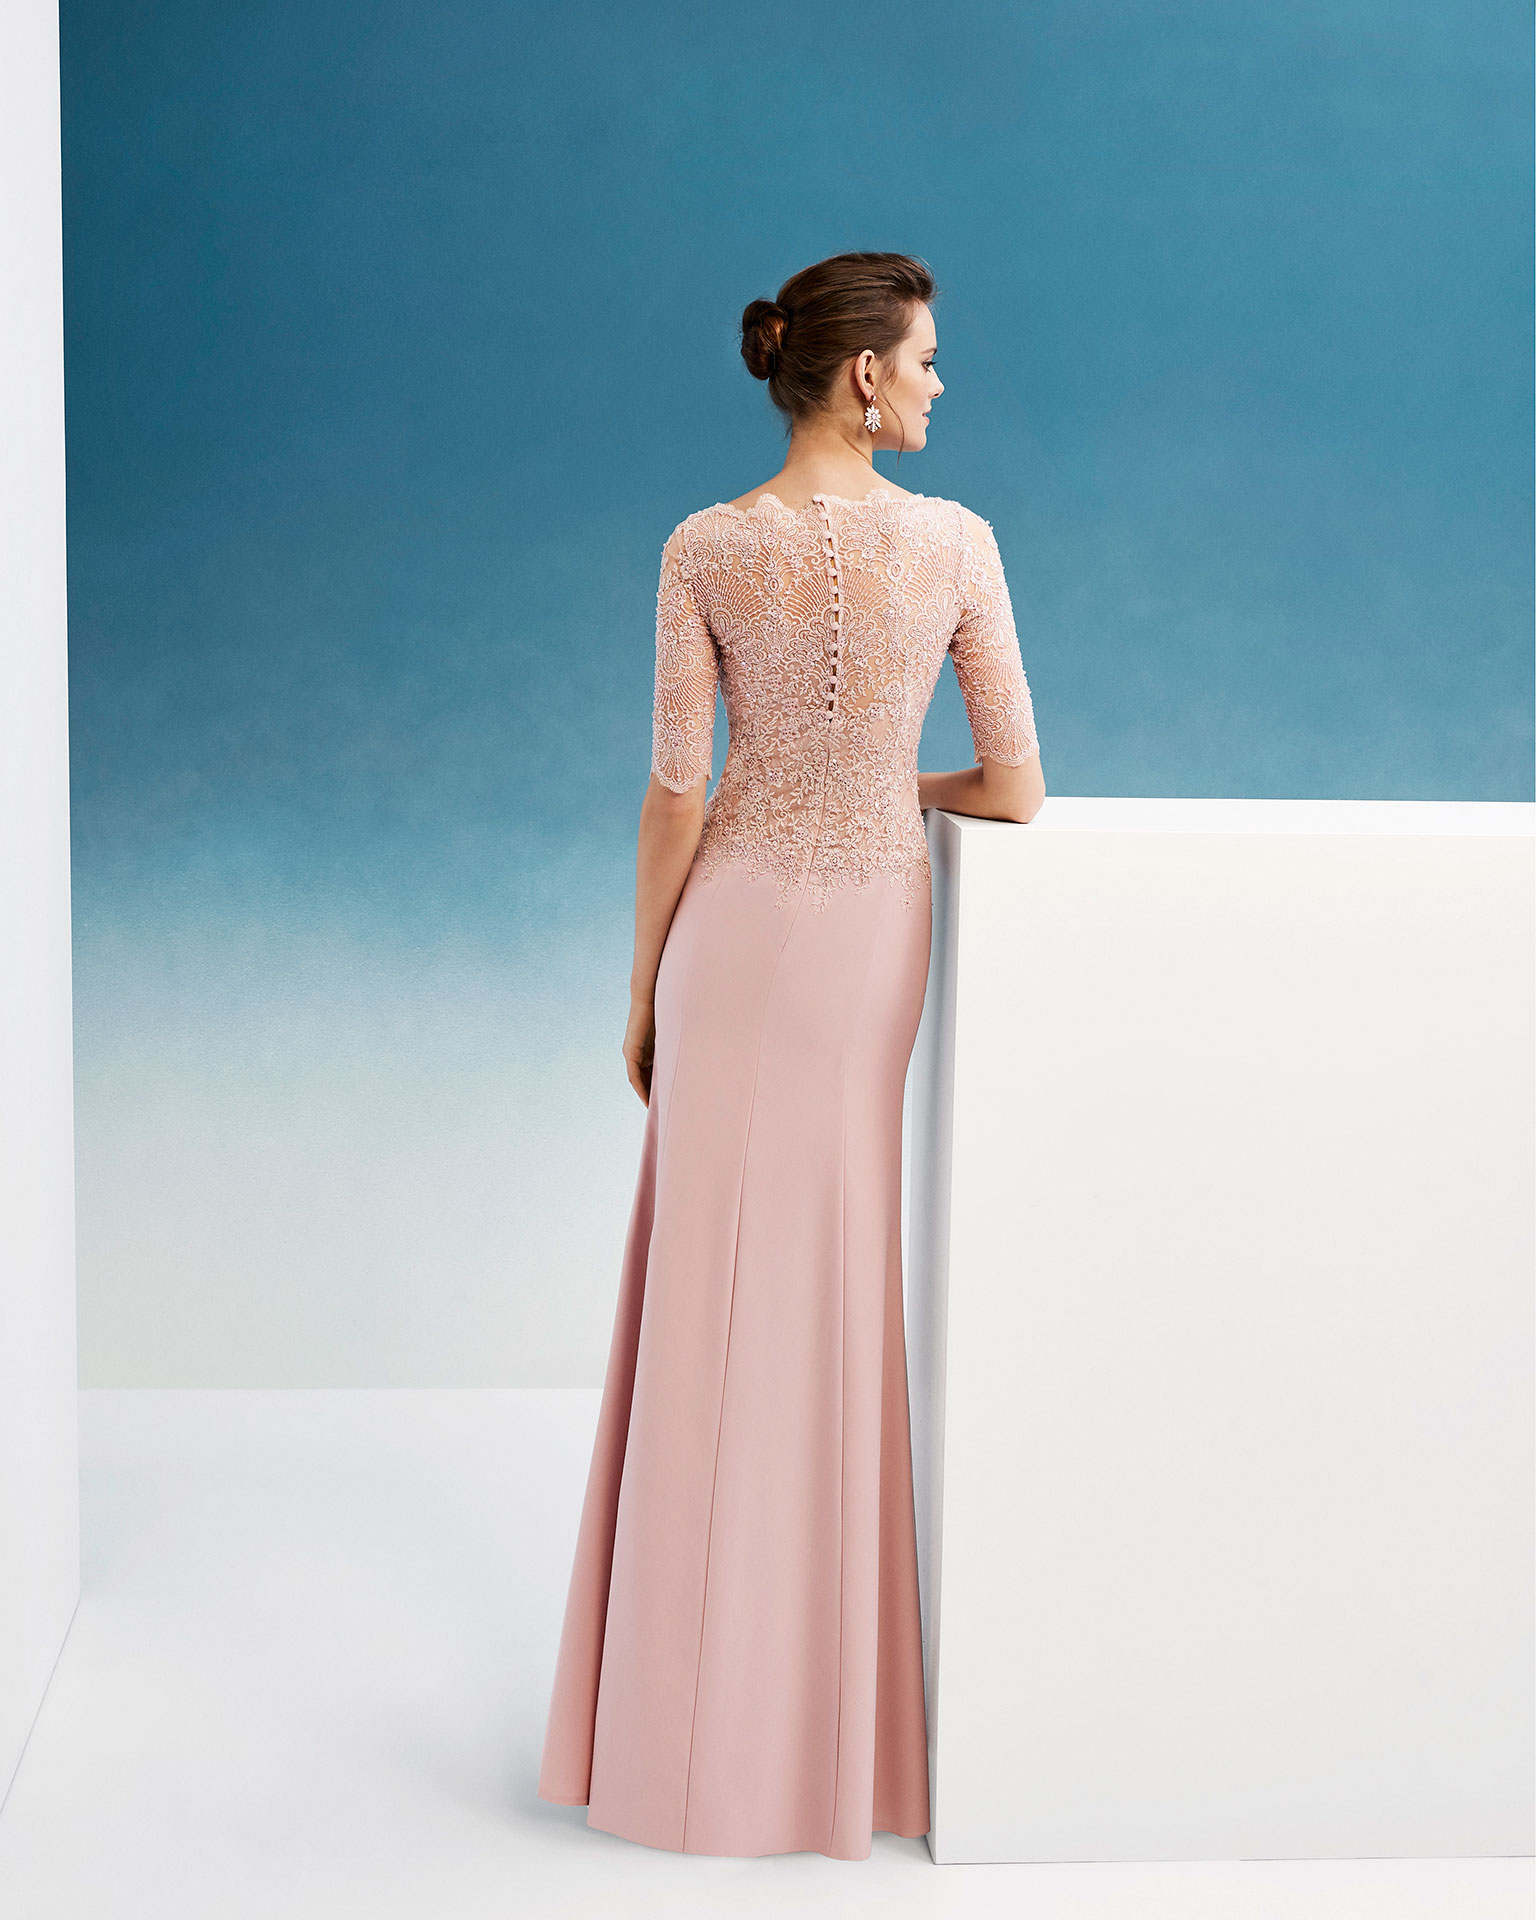 Beaded crepe and lace cocktail dress. With bateau neckline and three-quarter sleeves. 2019 FIESTA AIRE BARCELONA Collection.